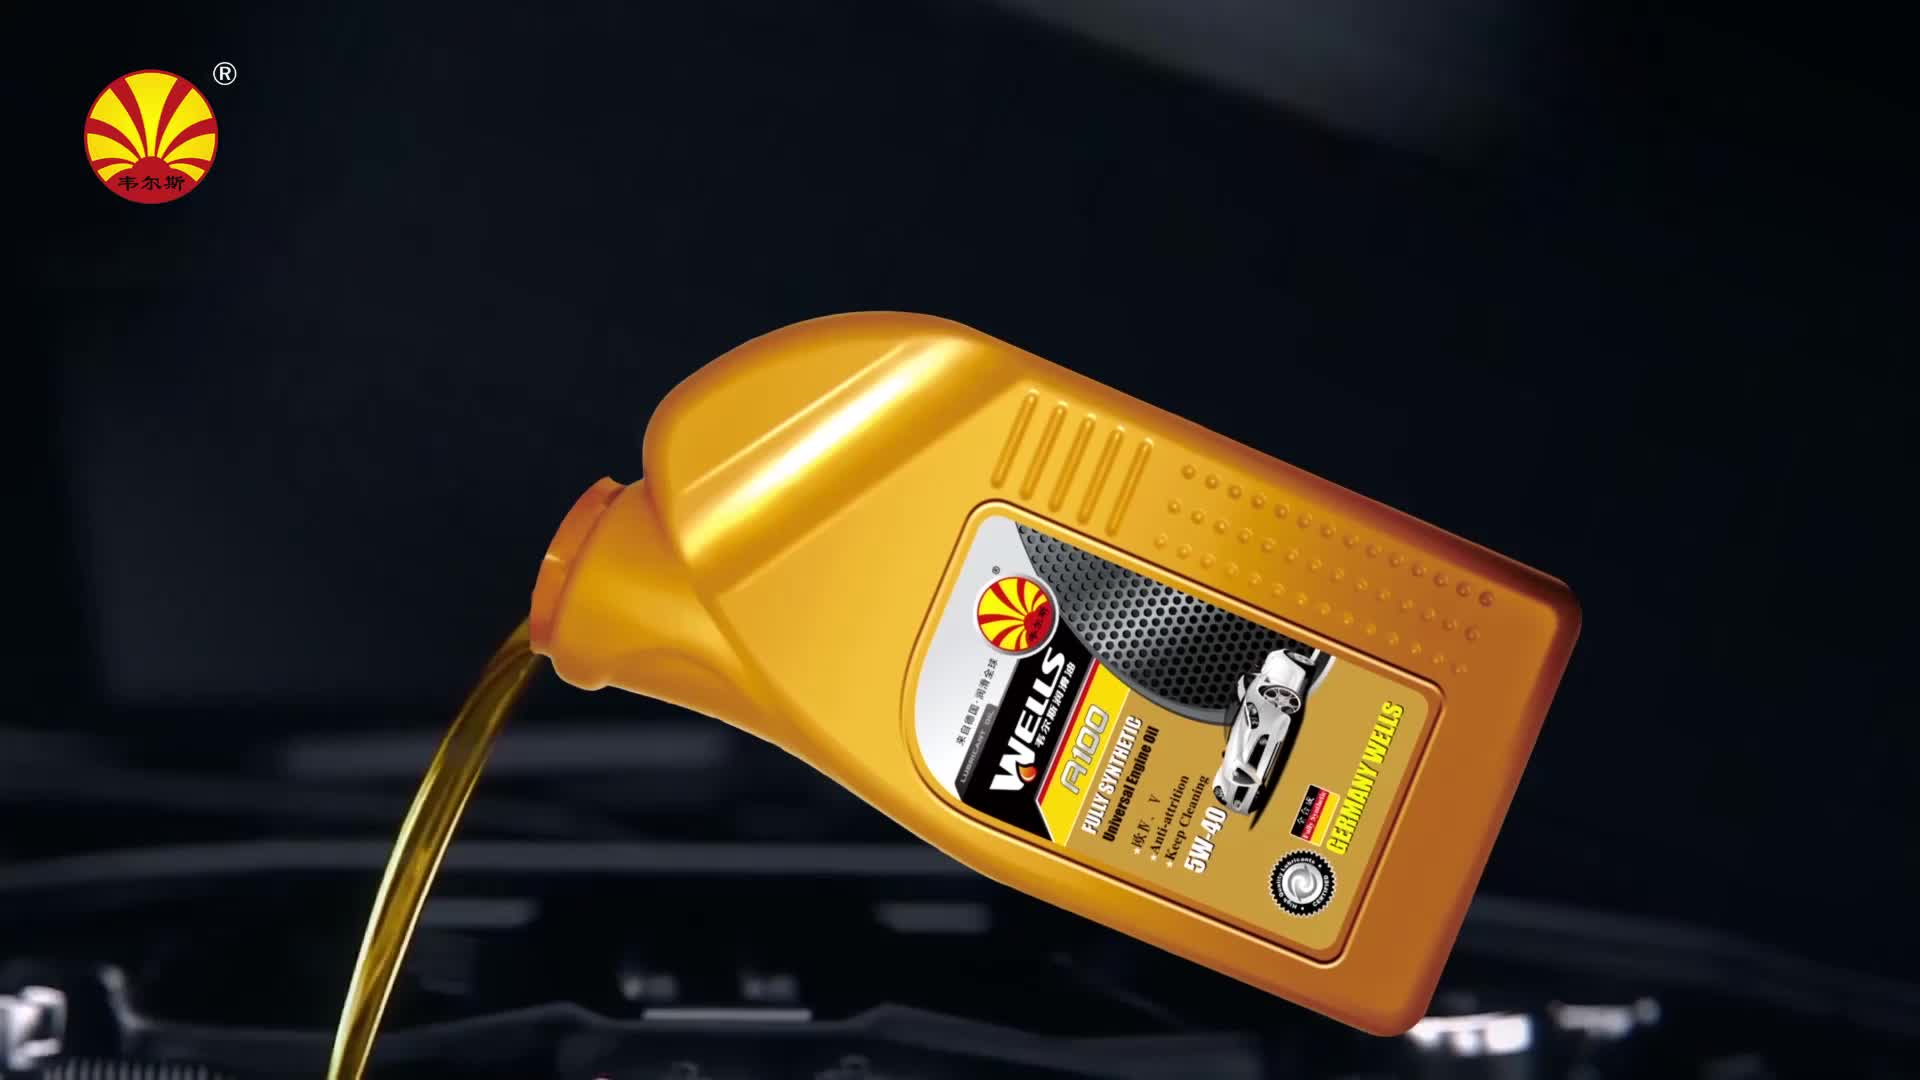 Excellent synthetic gasoline engine oil for car Wells A8 10W30